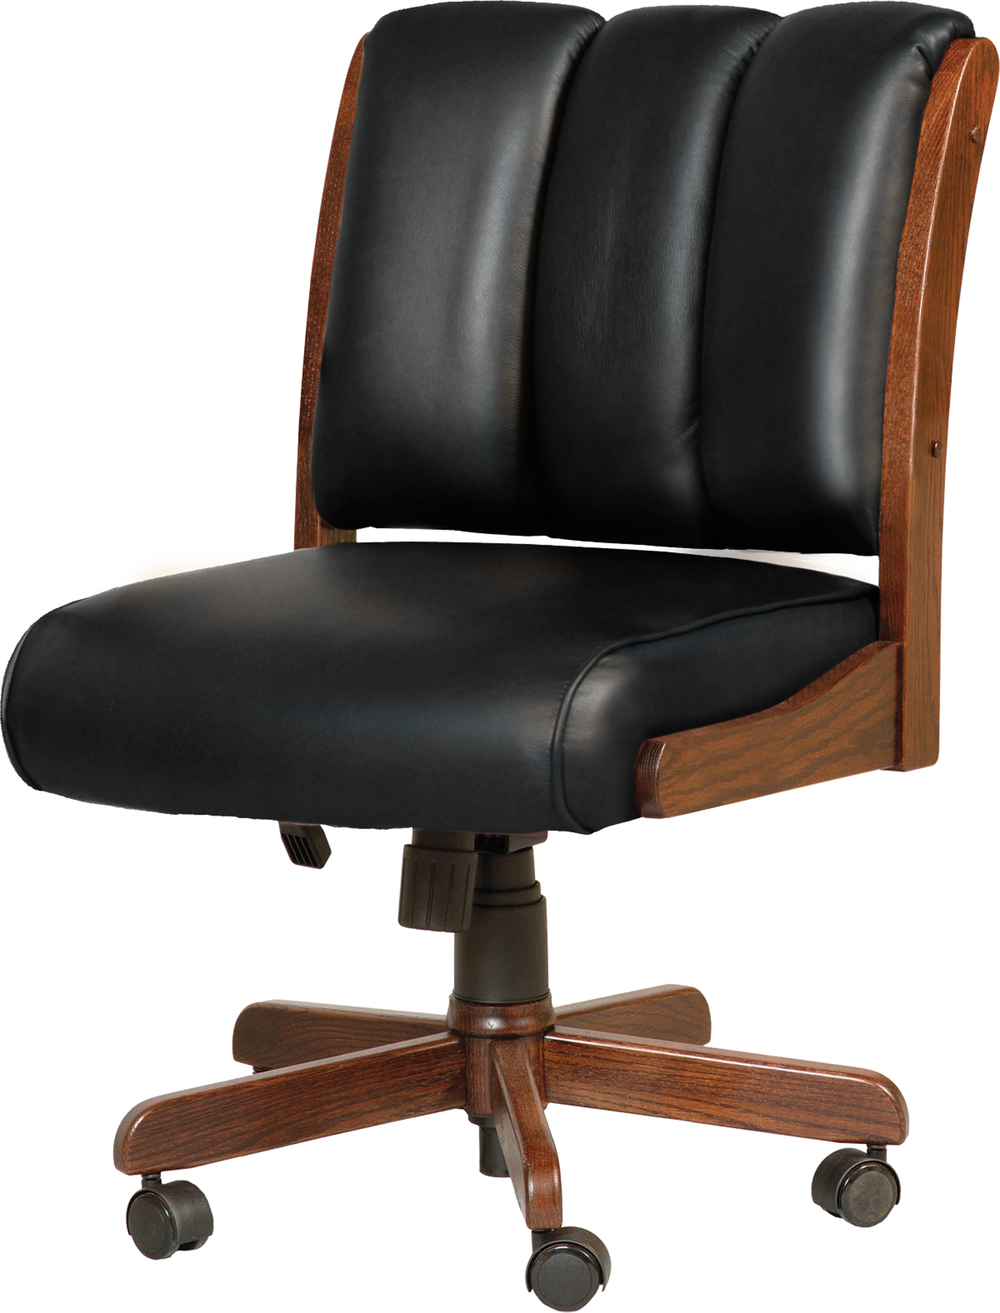 Midland Side Chair with gas lift